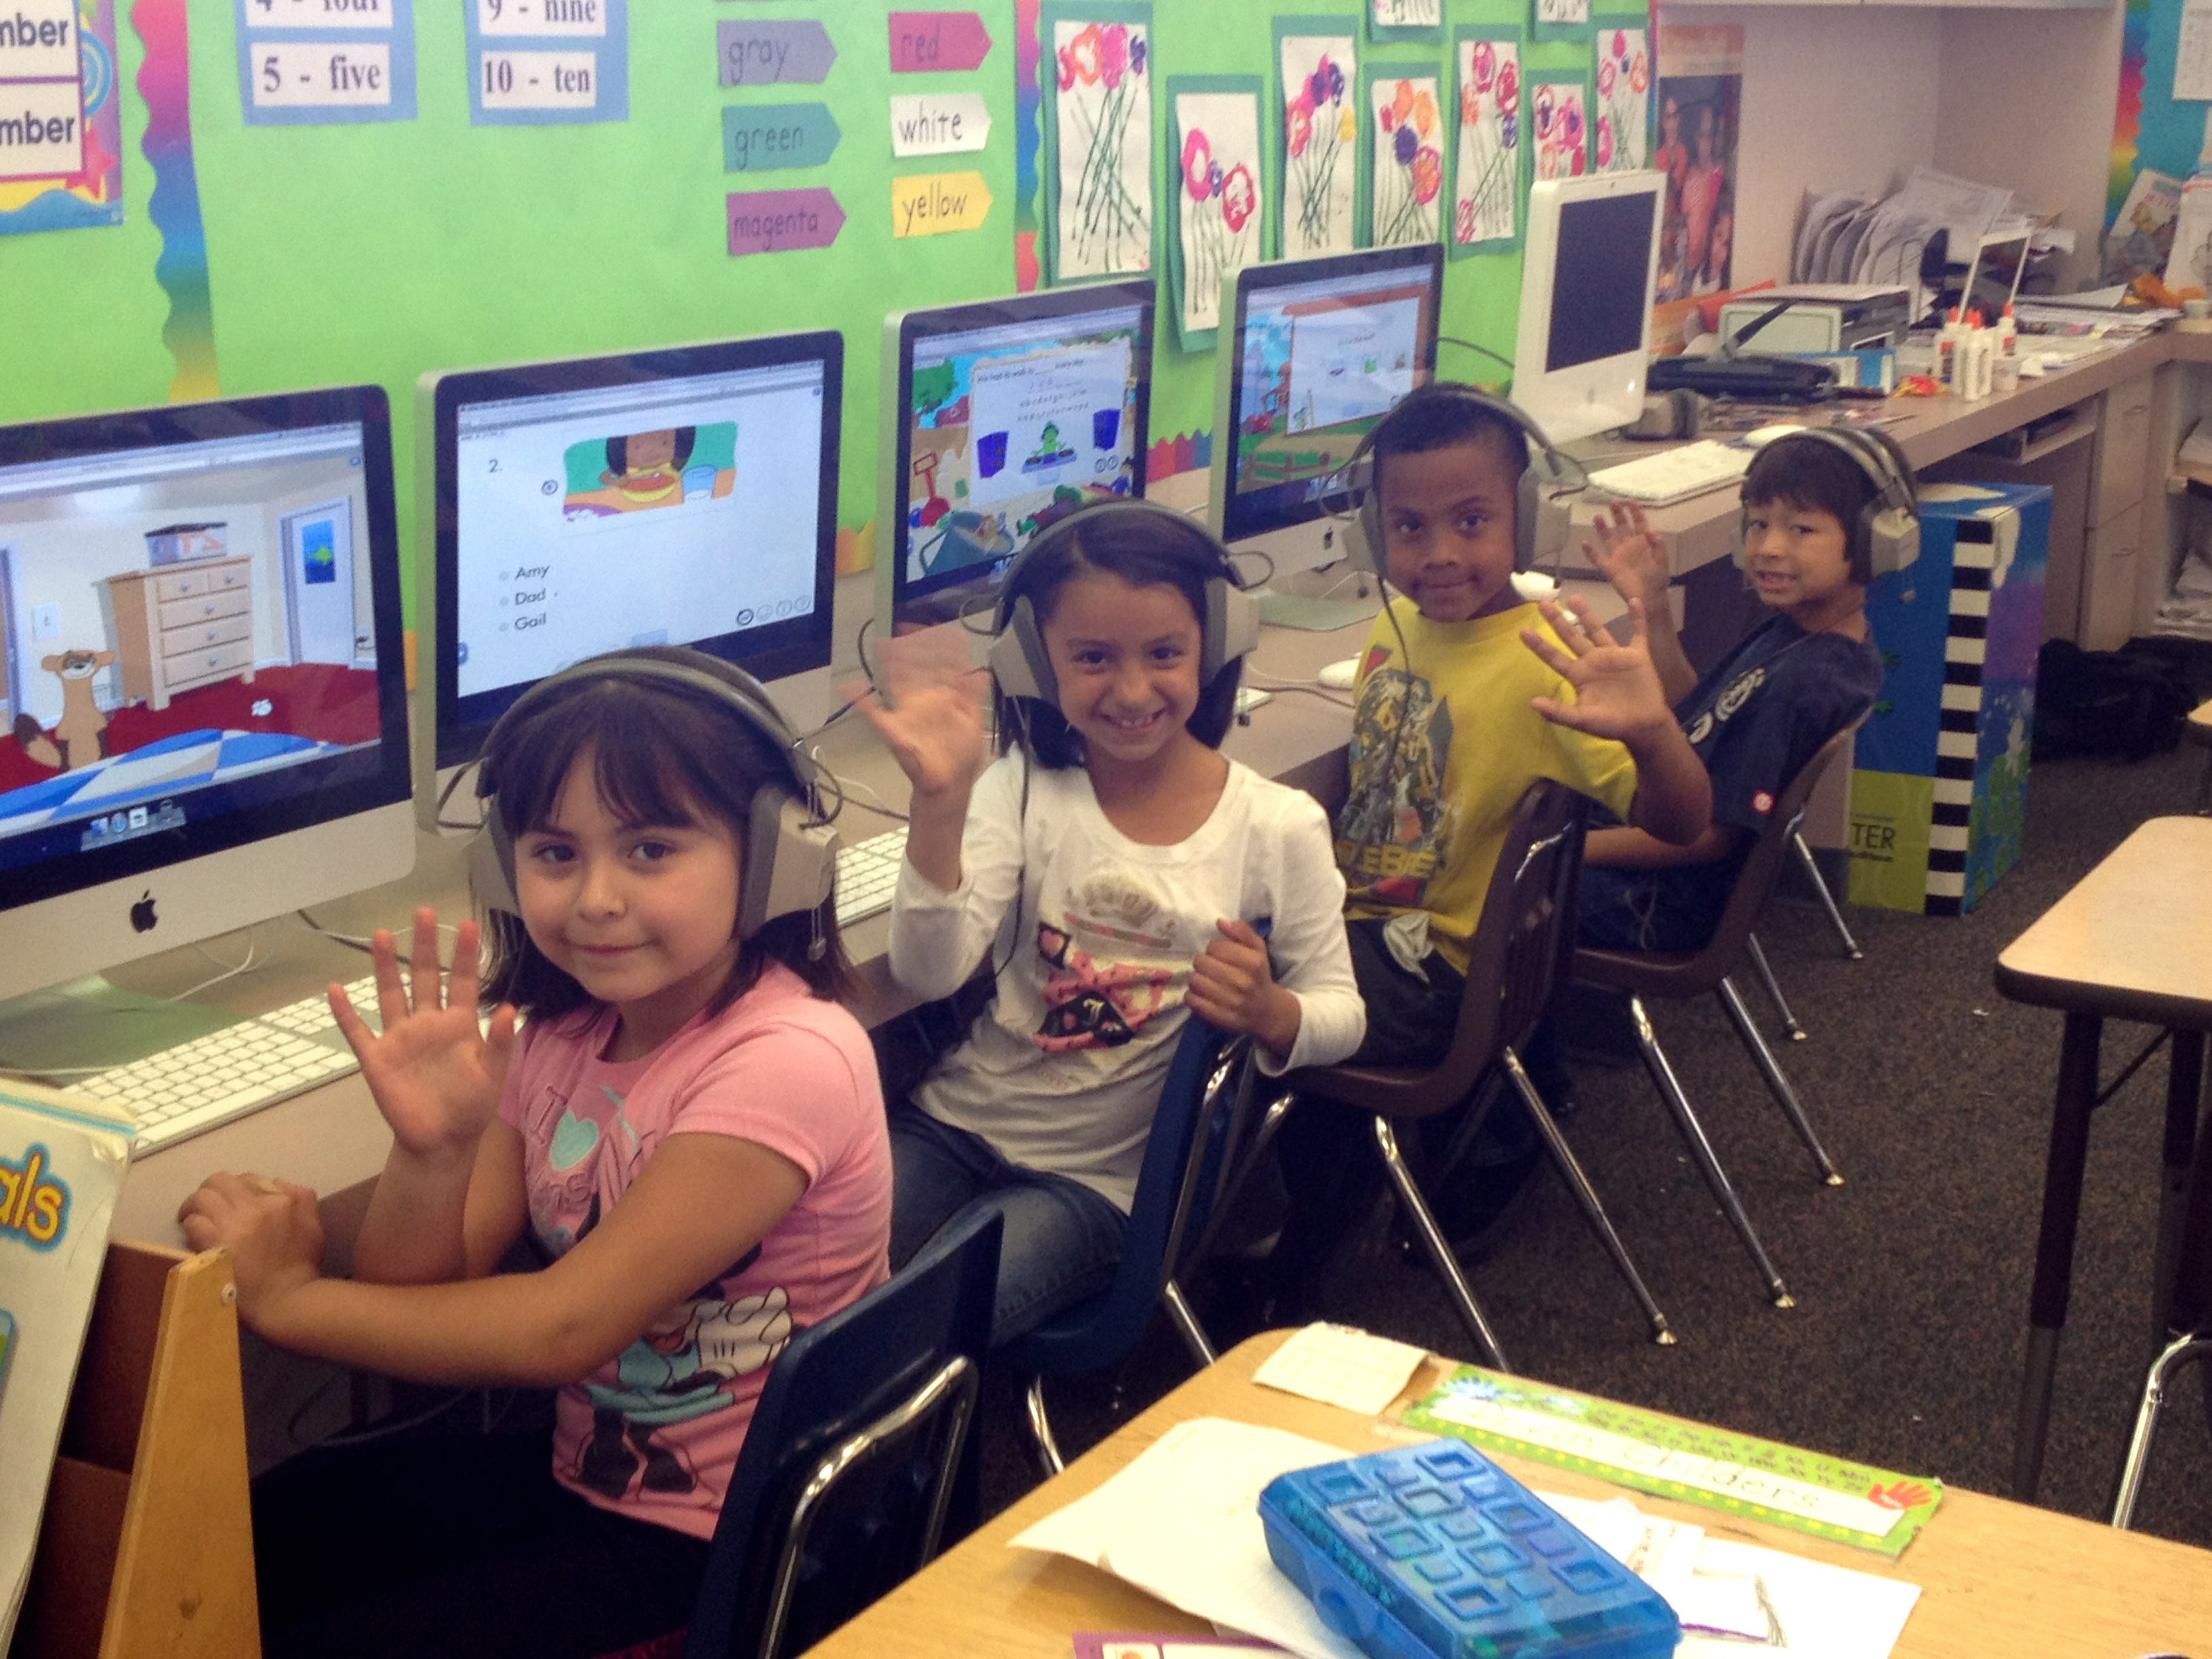 Magnolia Elementary School students with their iMacs and Imagine Learning software (El Cajon, 2011)